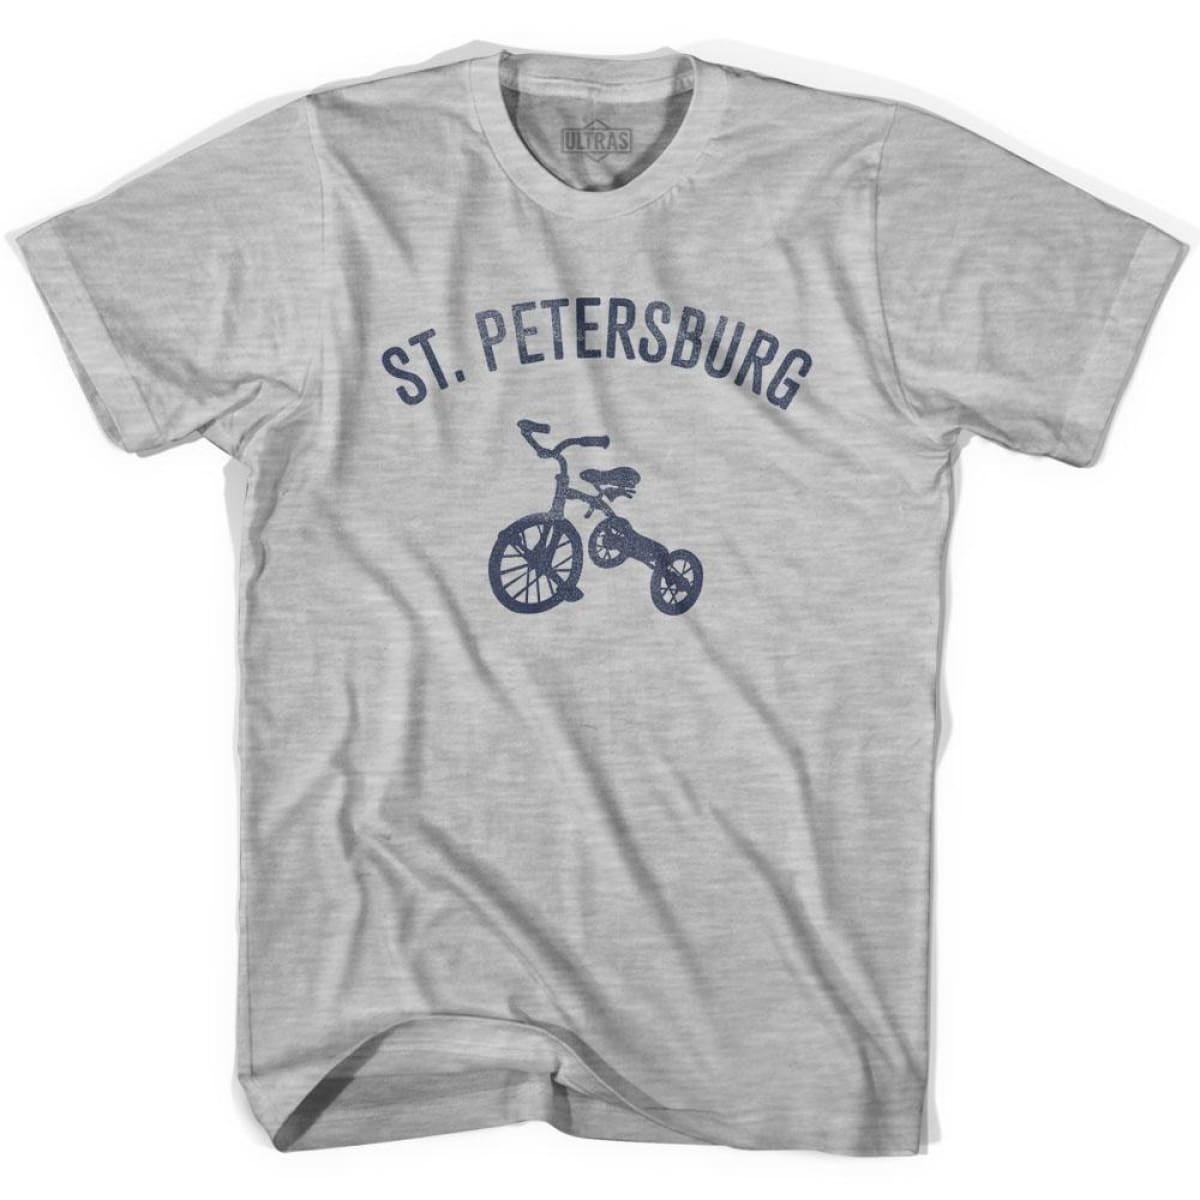 St. Petersburg City Tricycle Youth Cotton T-shirt - Tricycle City